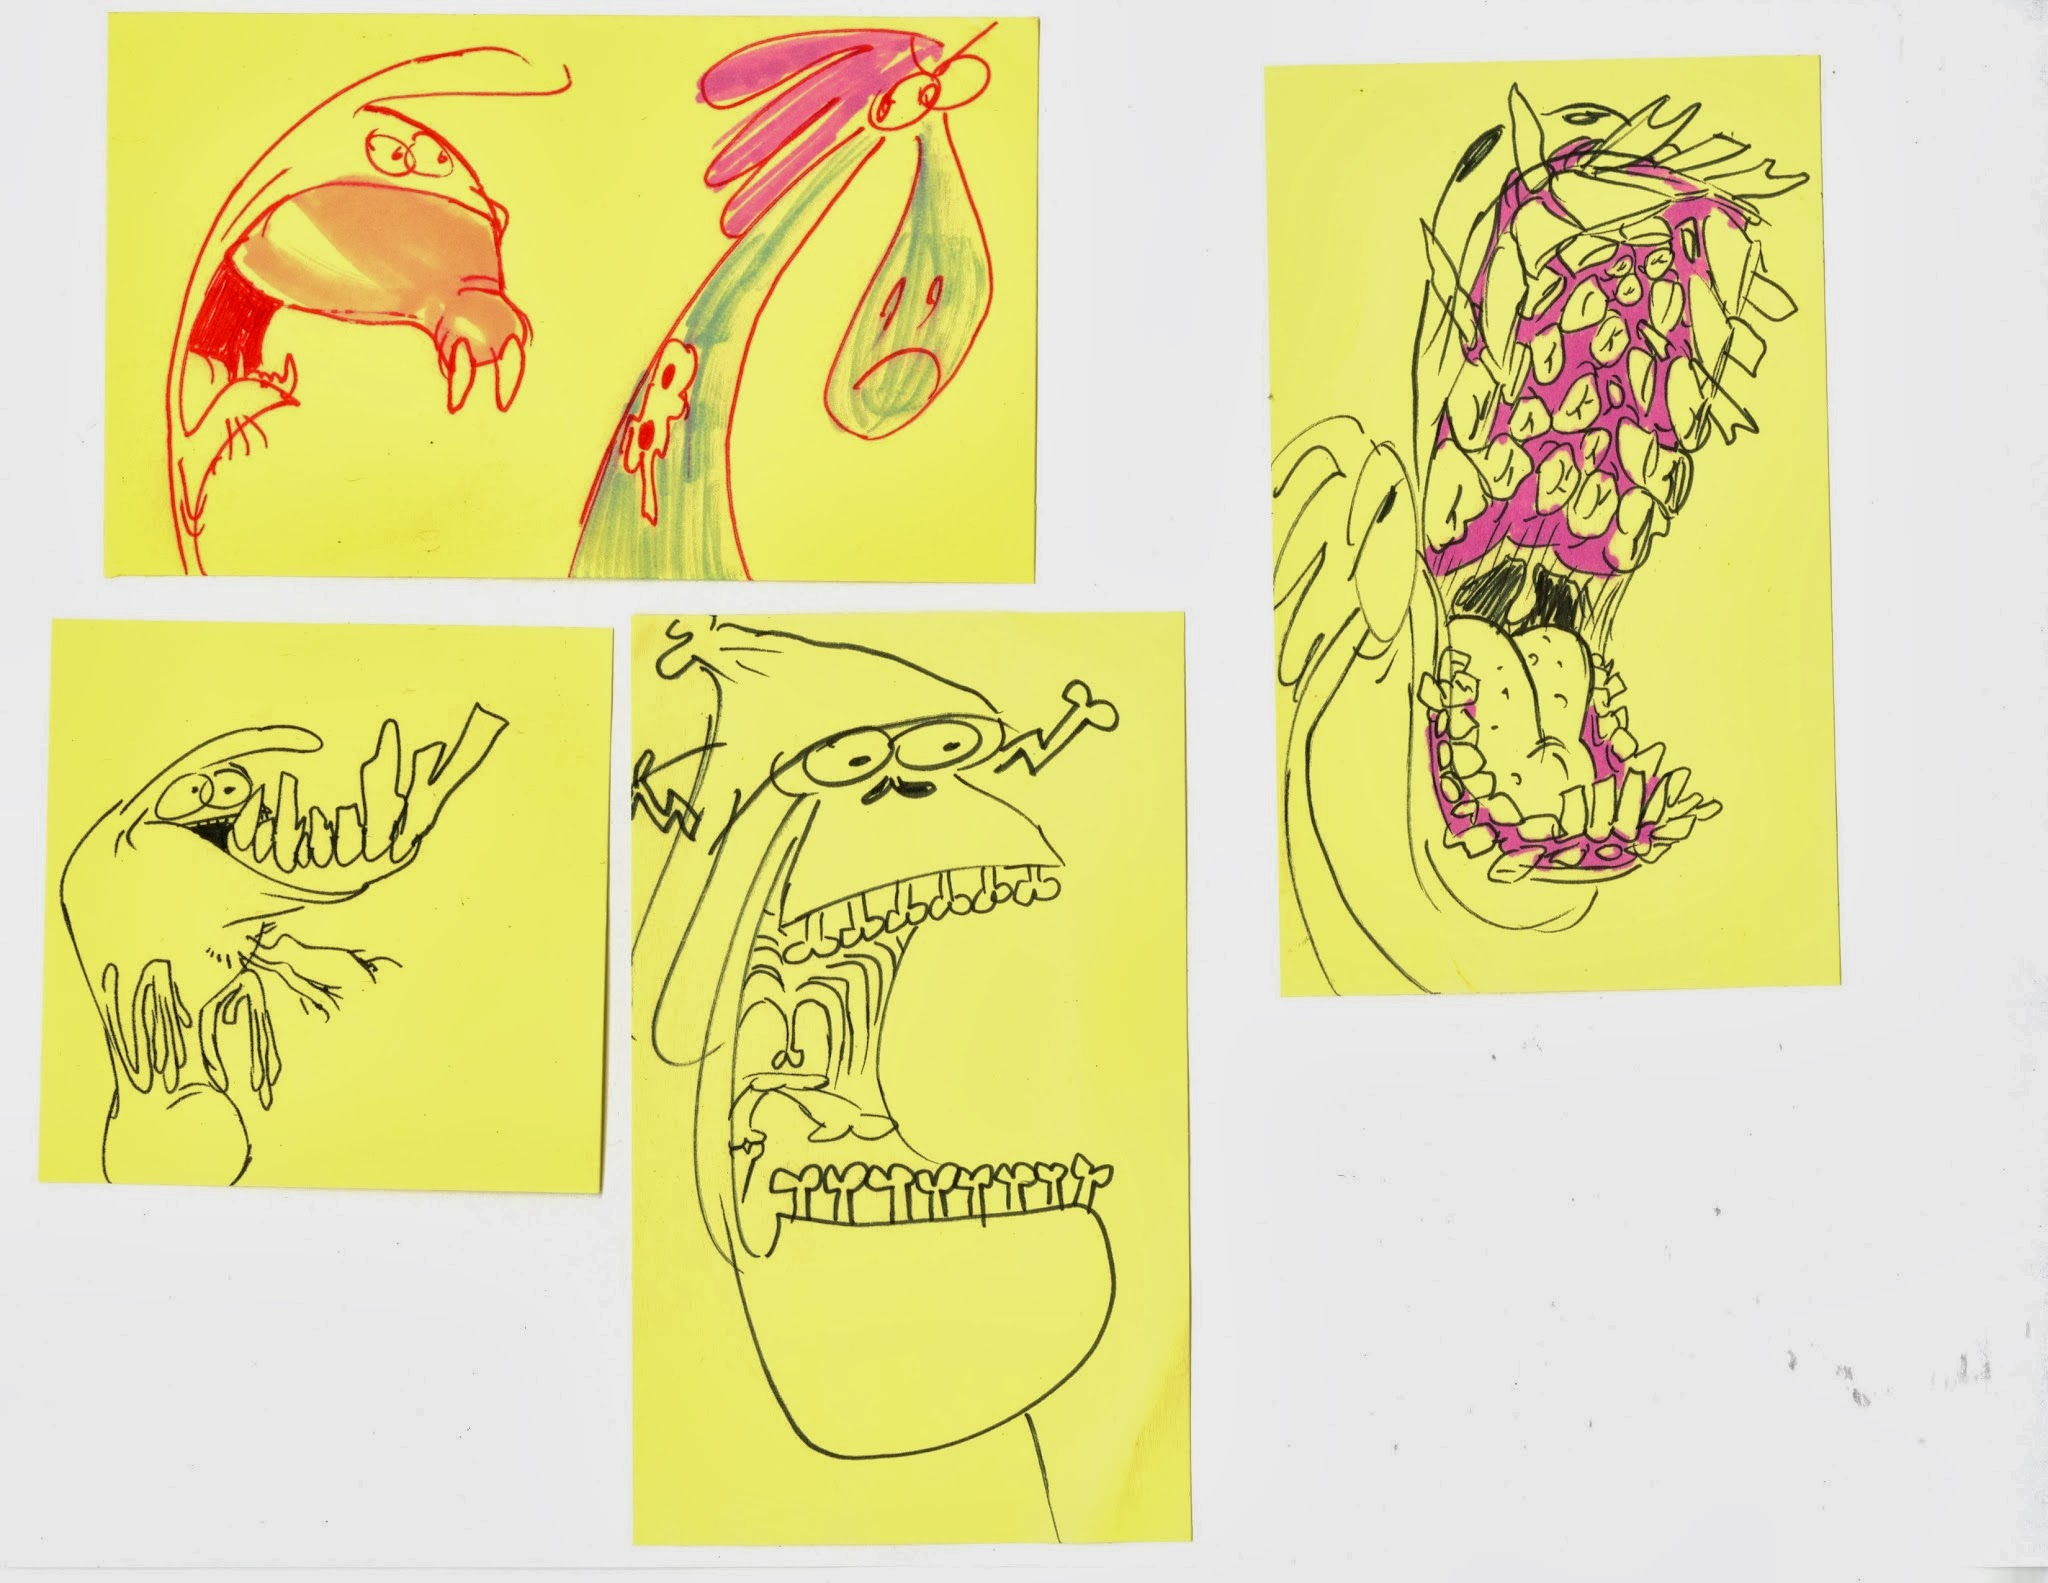 2048x1583 Post It Drawing Scans024 Derpy News Wander Over Yonder